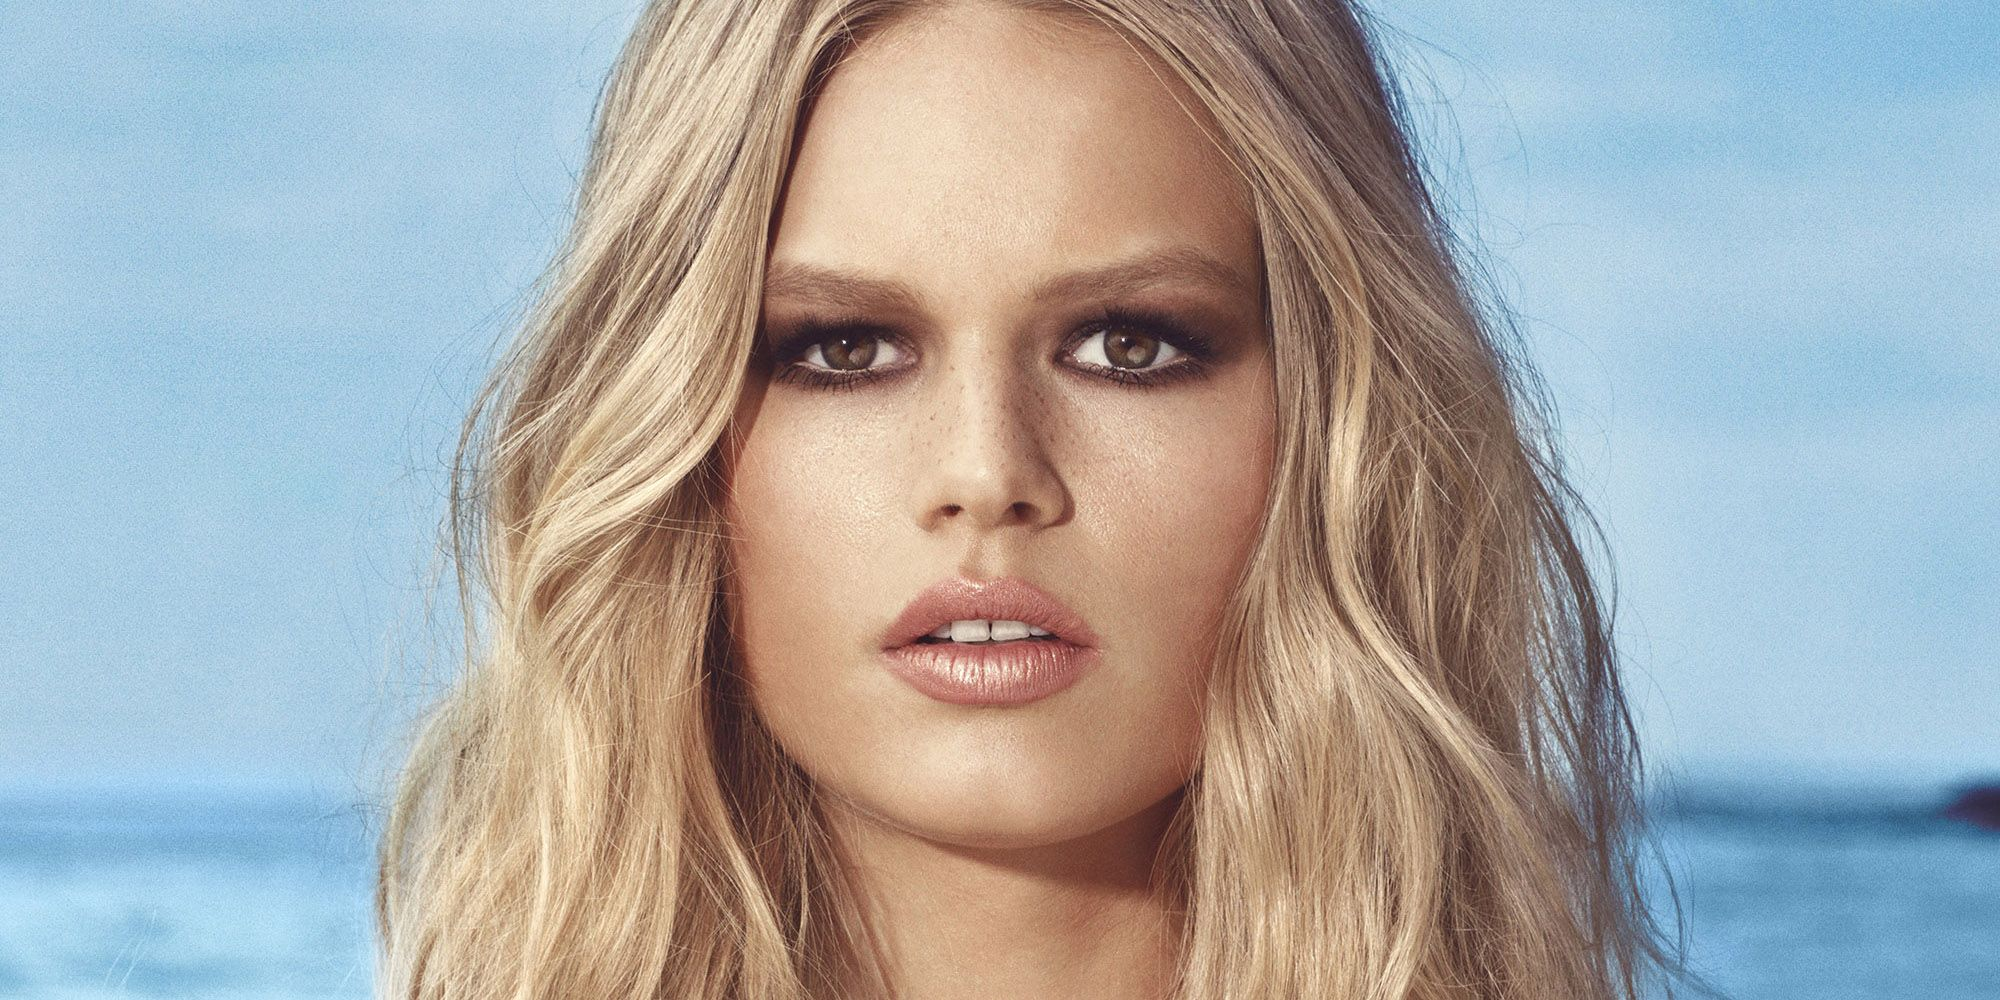 Hot Blonde Anna Ewers Wallpapers - Anna Ewers Net Worth, Pics, Wallpapers, Career and Biography